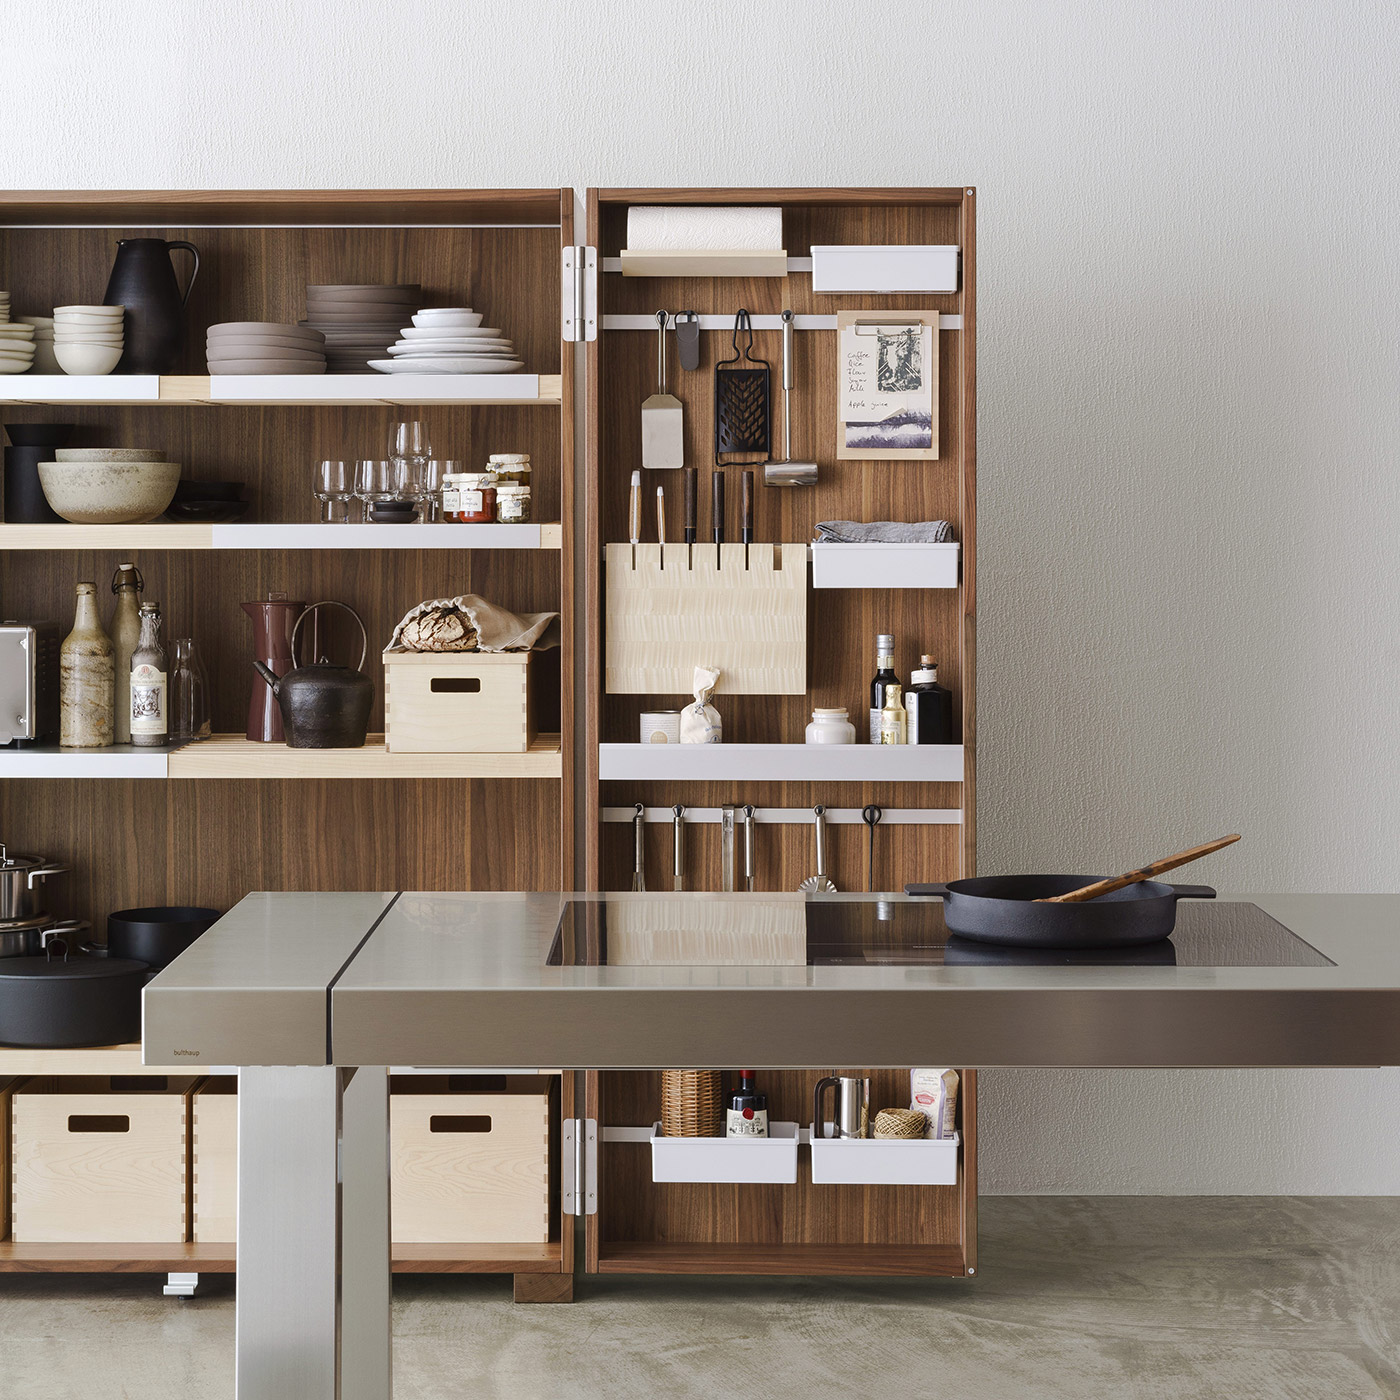 open b2 kitchen tool cabinet with pots, pans, utensils, knives, tableware, glassware and food storage